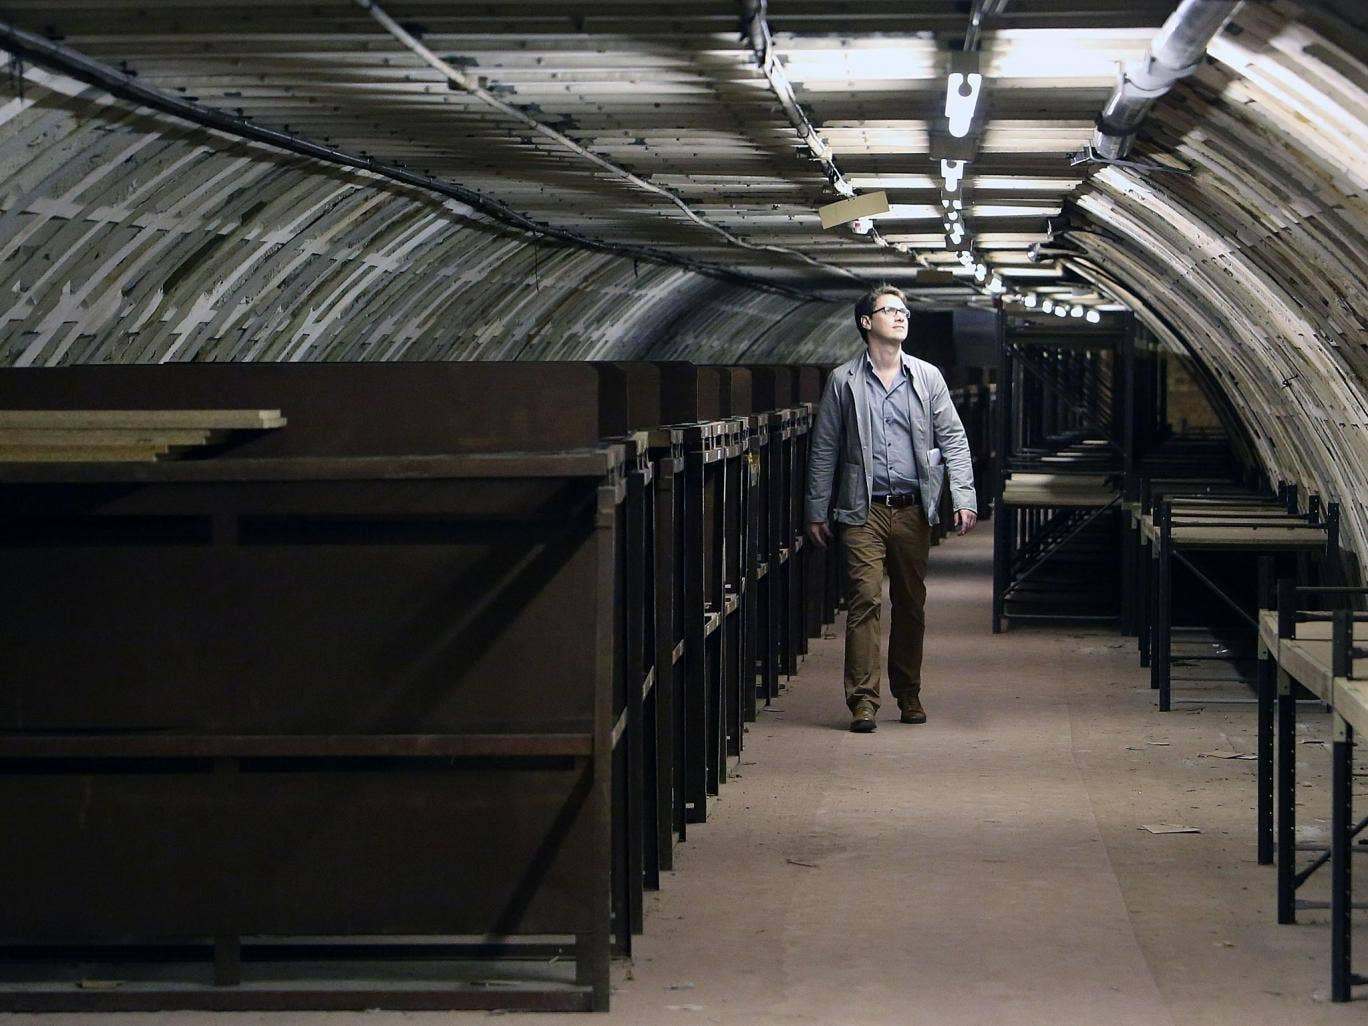 The Independent's Jamie Merrill examines the World War II bunk beds in a deep level WWII air raid shelter beneath Clapham Common Underground Station